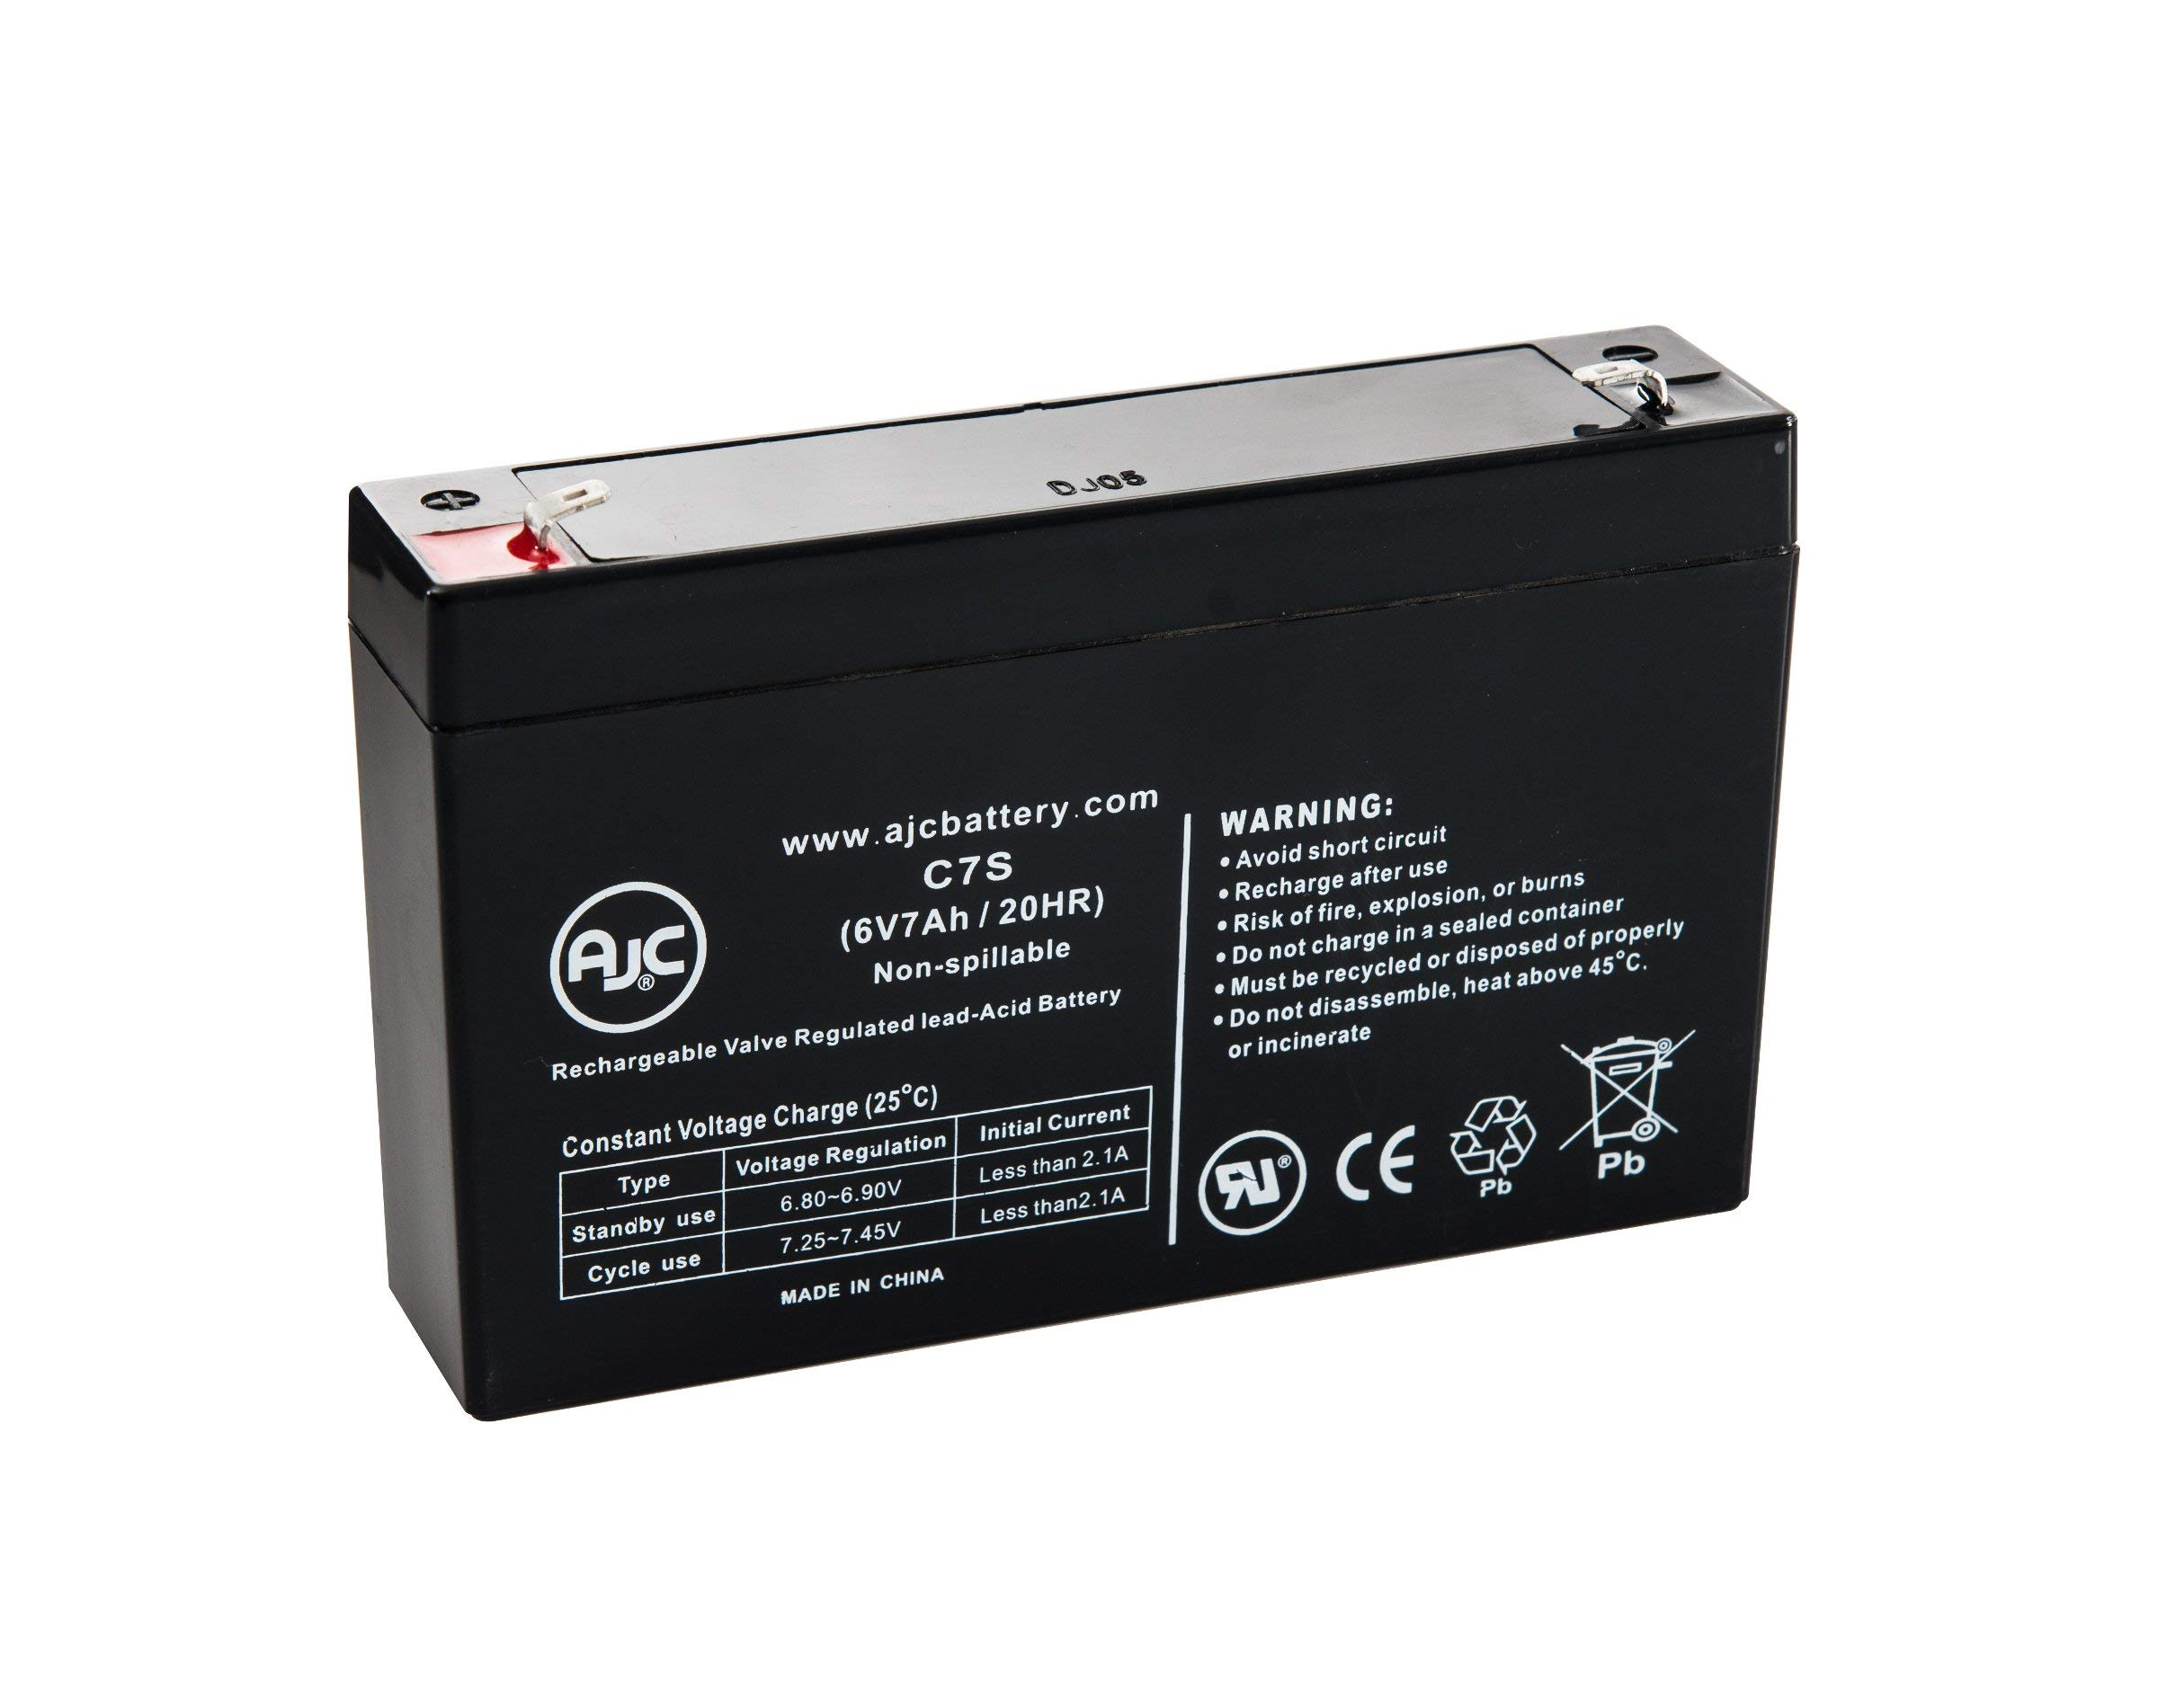 Leoch DJW6-7.0, DJW 6-7.0 6V 7Ah UPS Battery - This is an AJC Brand Replacement